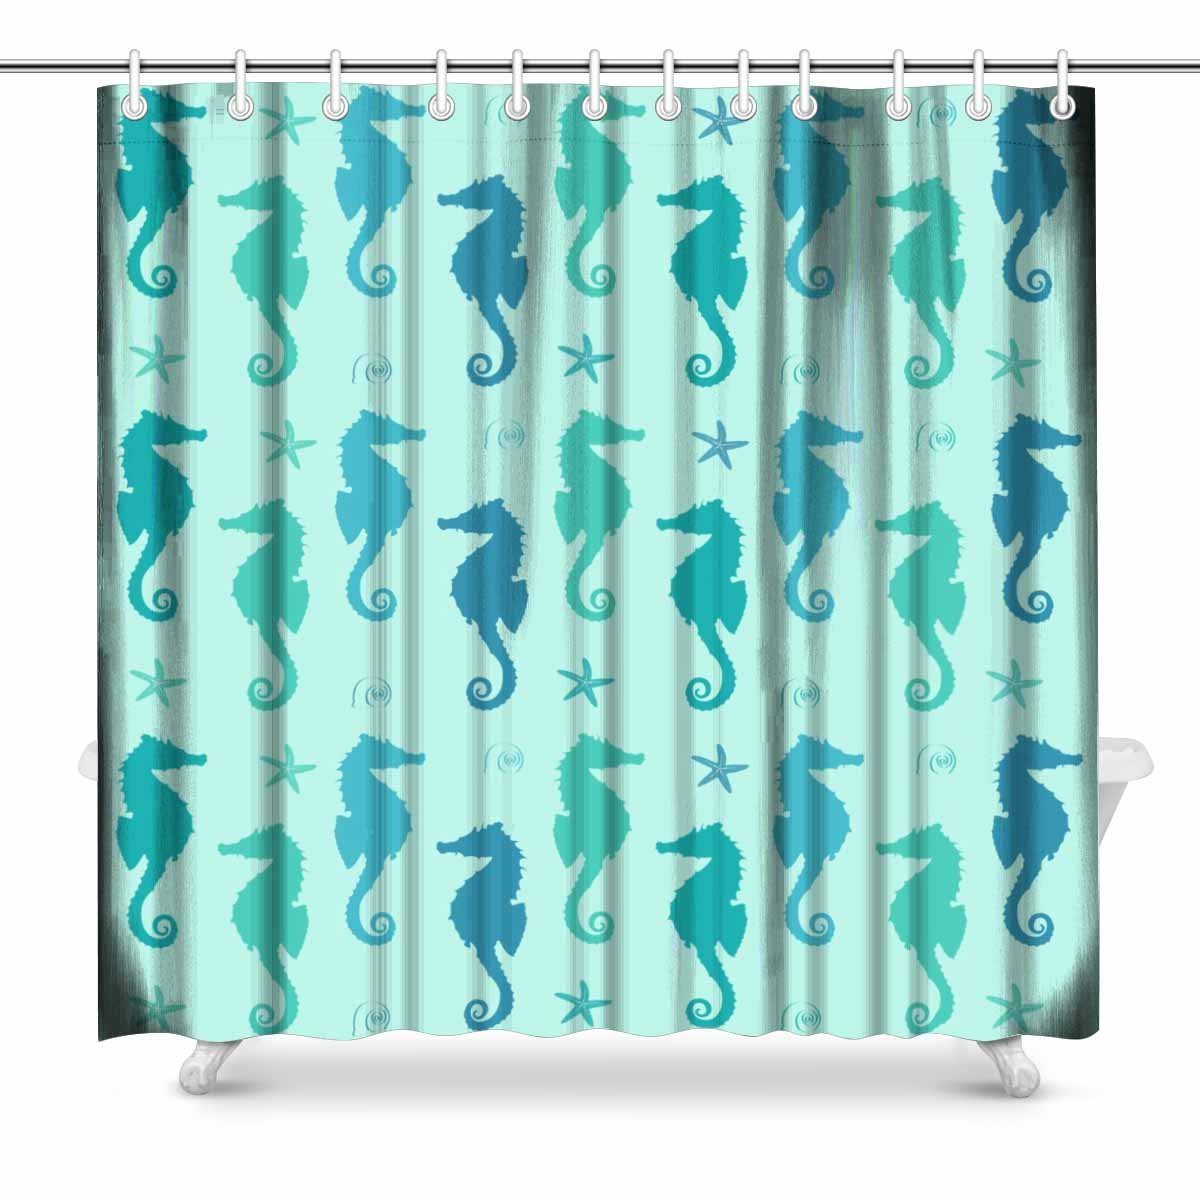 Aplysia Blue And Mint Green Seahorse Bathroom Decor Shower Curtain Set With Hooks 72 Inches Long